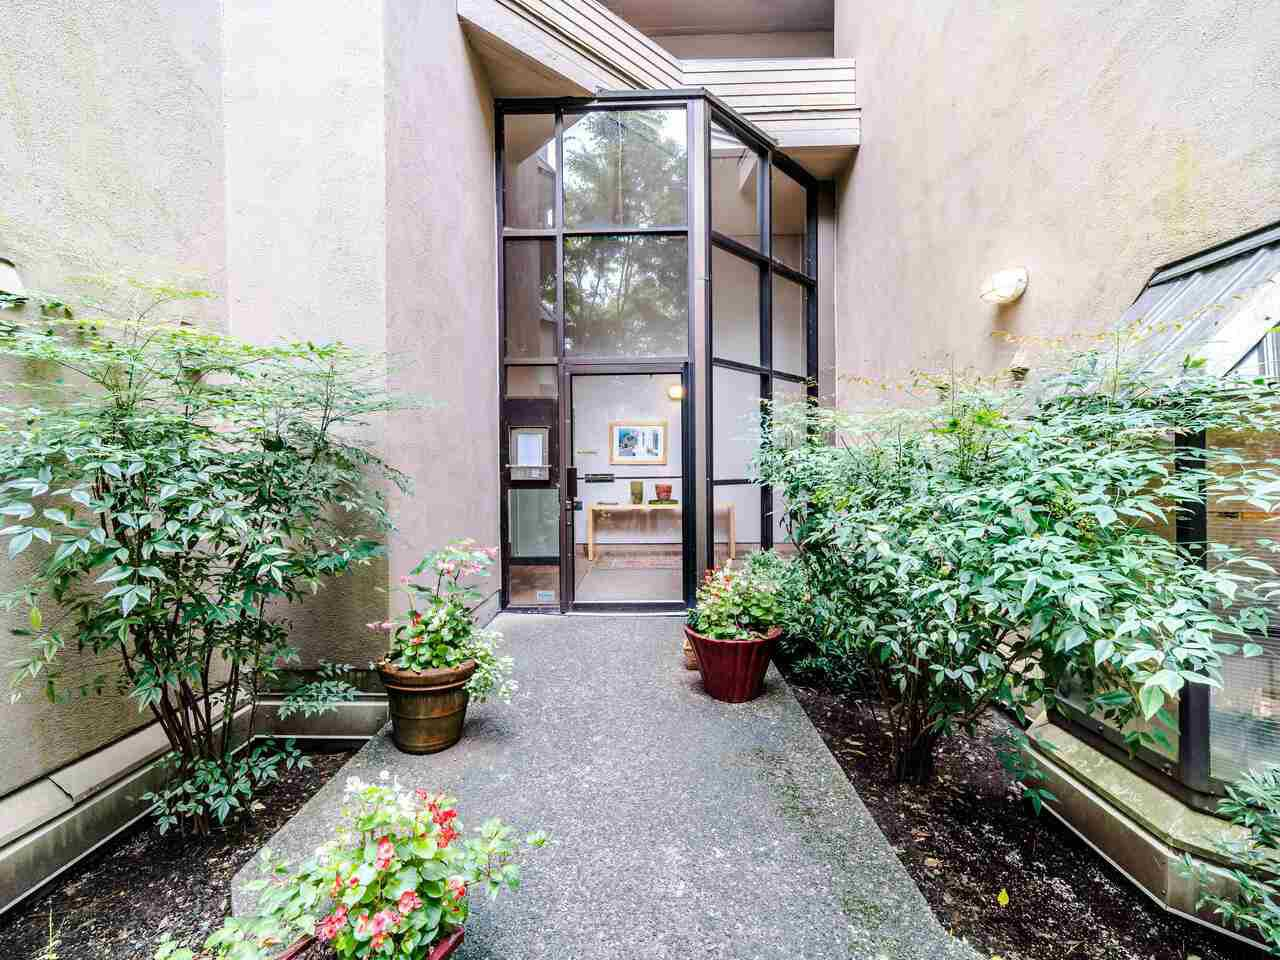 """Main Photo: 105 1922 W 7TH Avenue in Vancouver: Kitsilano Townhouse for sale in """"MAPLE GARDENS"""" (Vancouver West)  : MLS®# R2506845"""